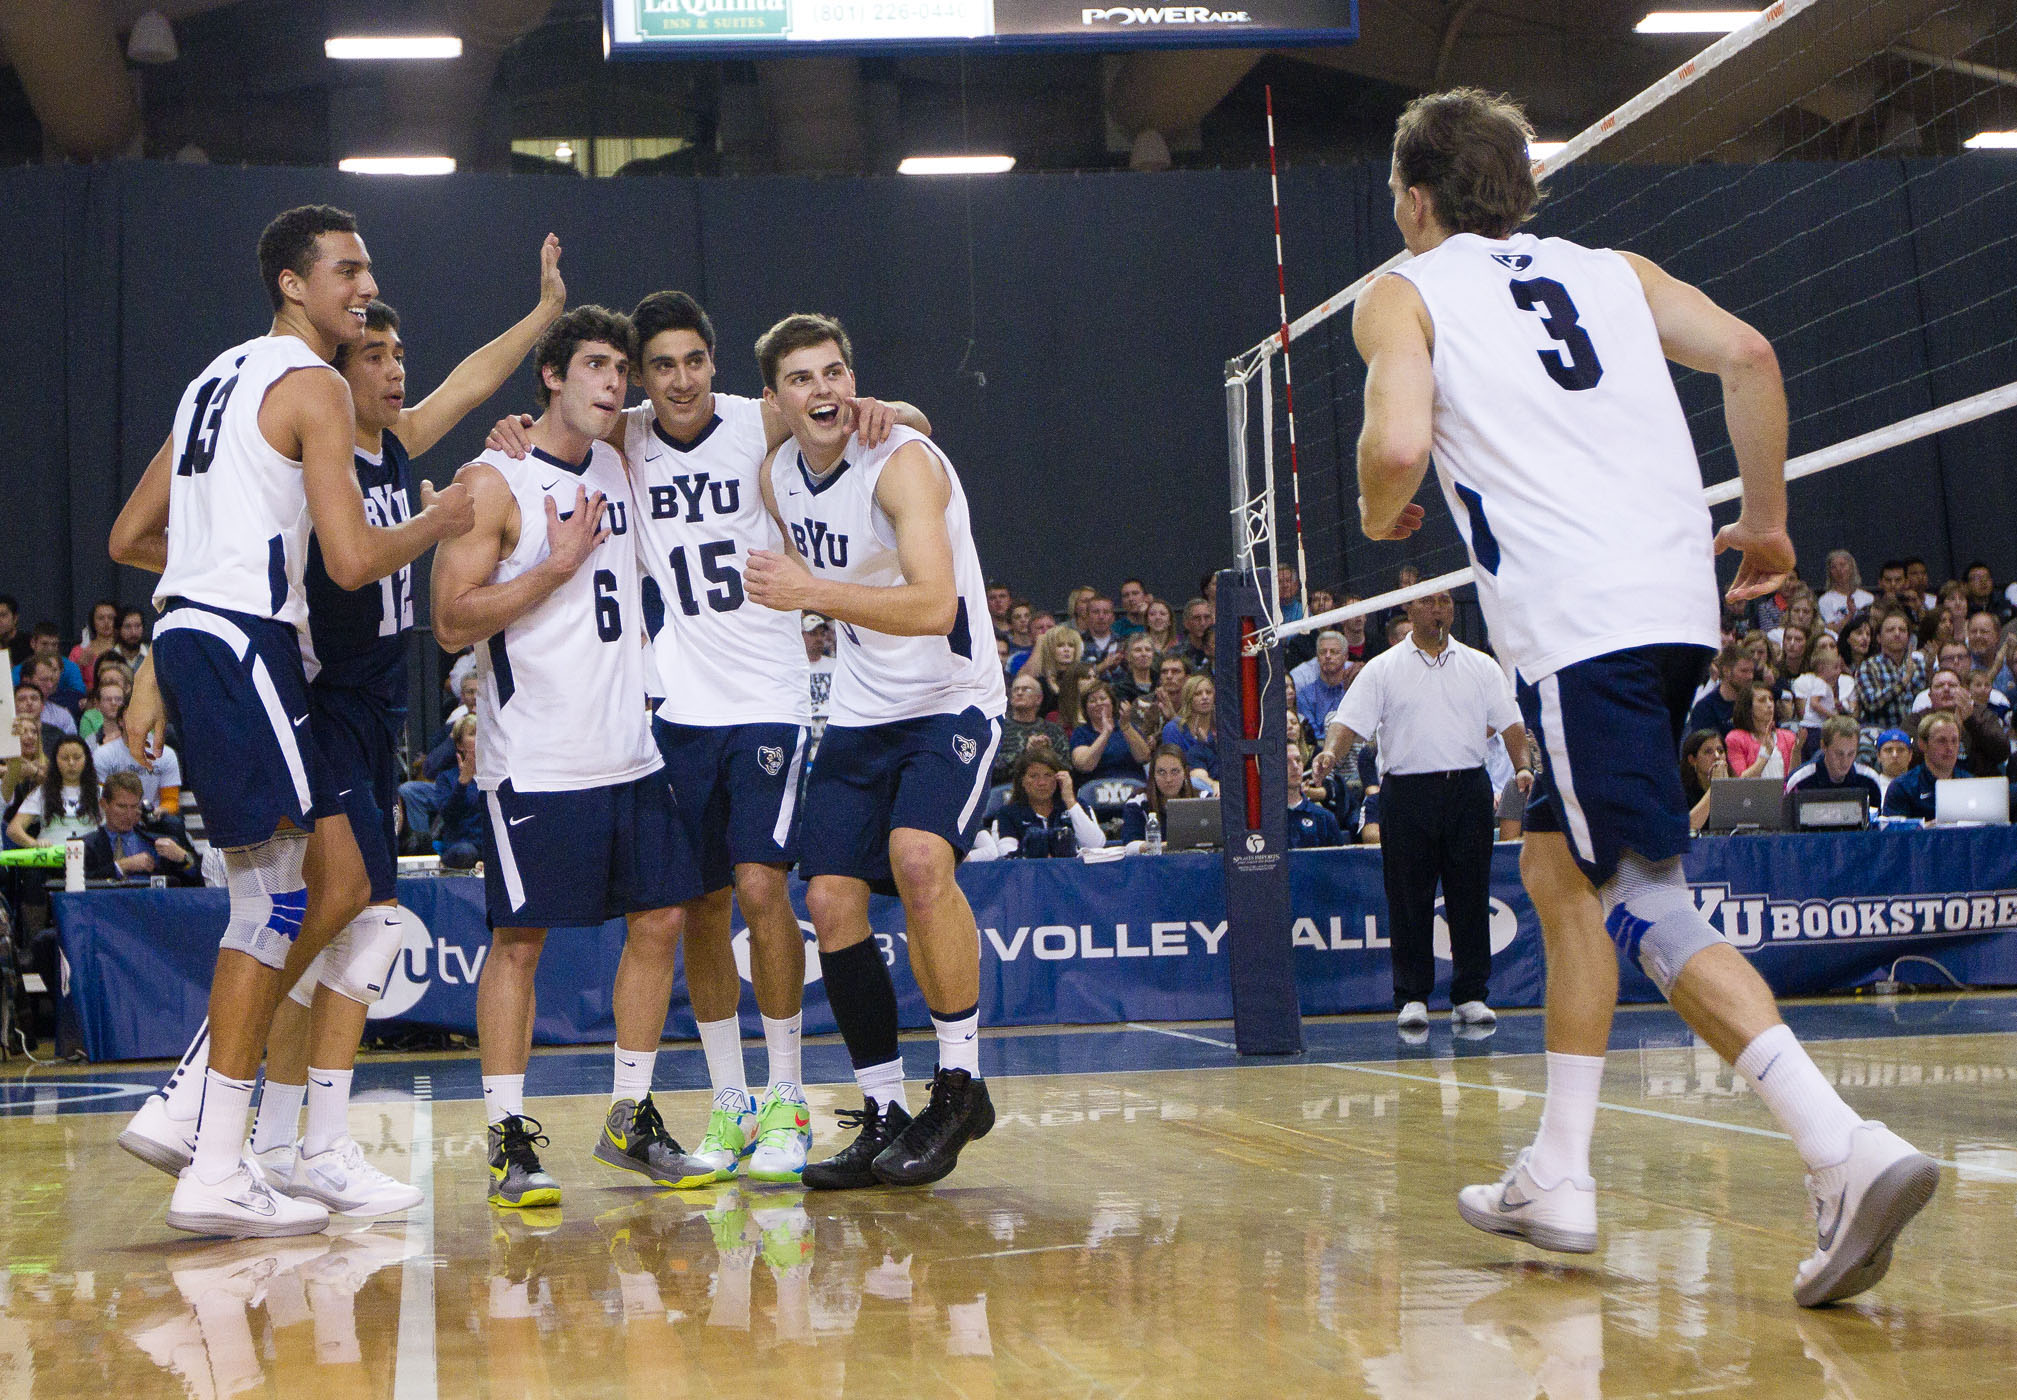 The team celebrates a point against UC Irvine on Friday night.